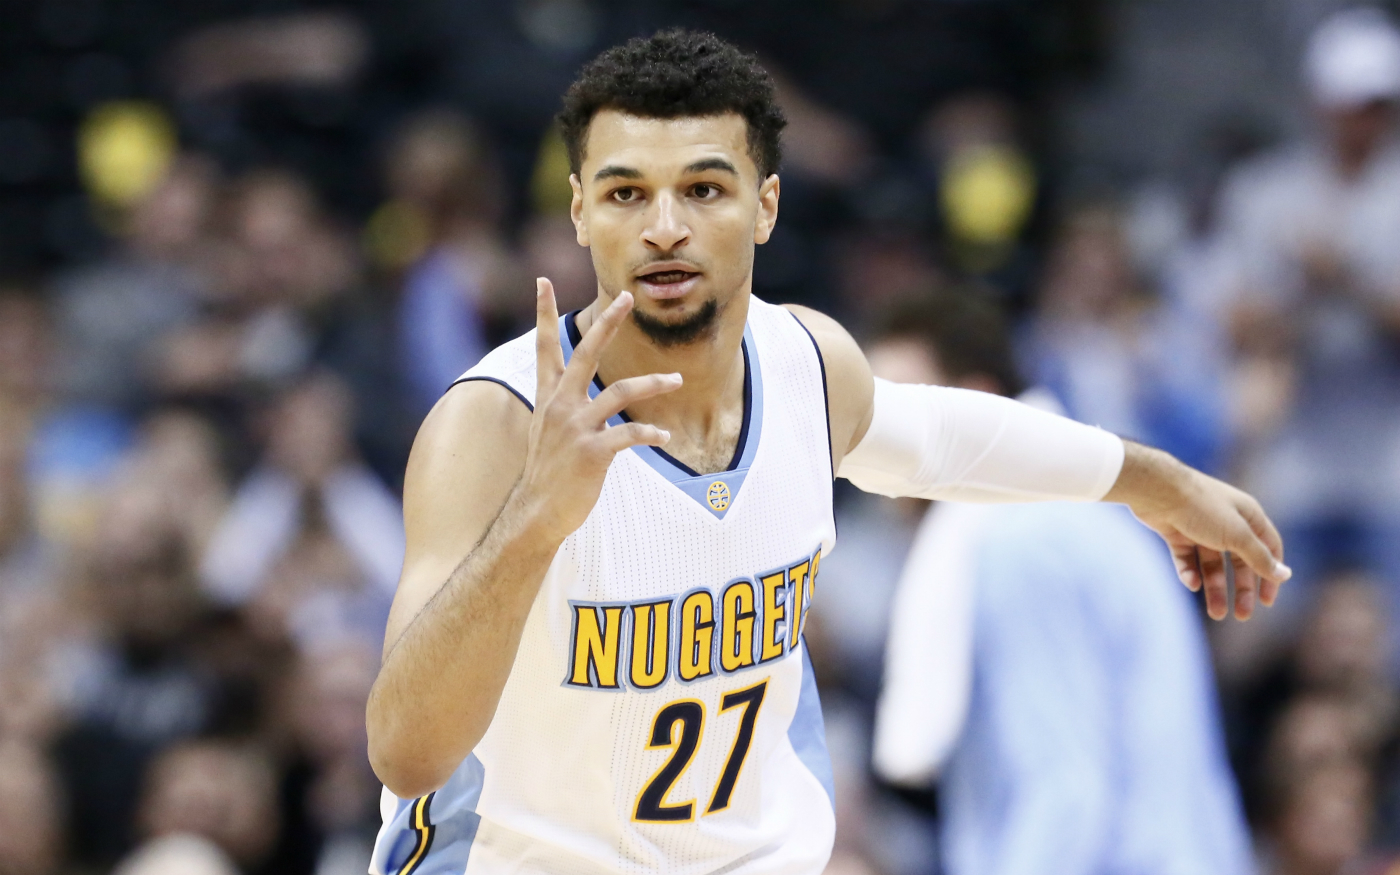 Les Nuggets se baladent contre les Lakers